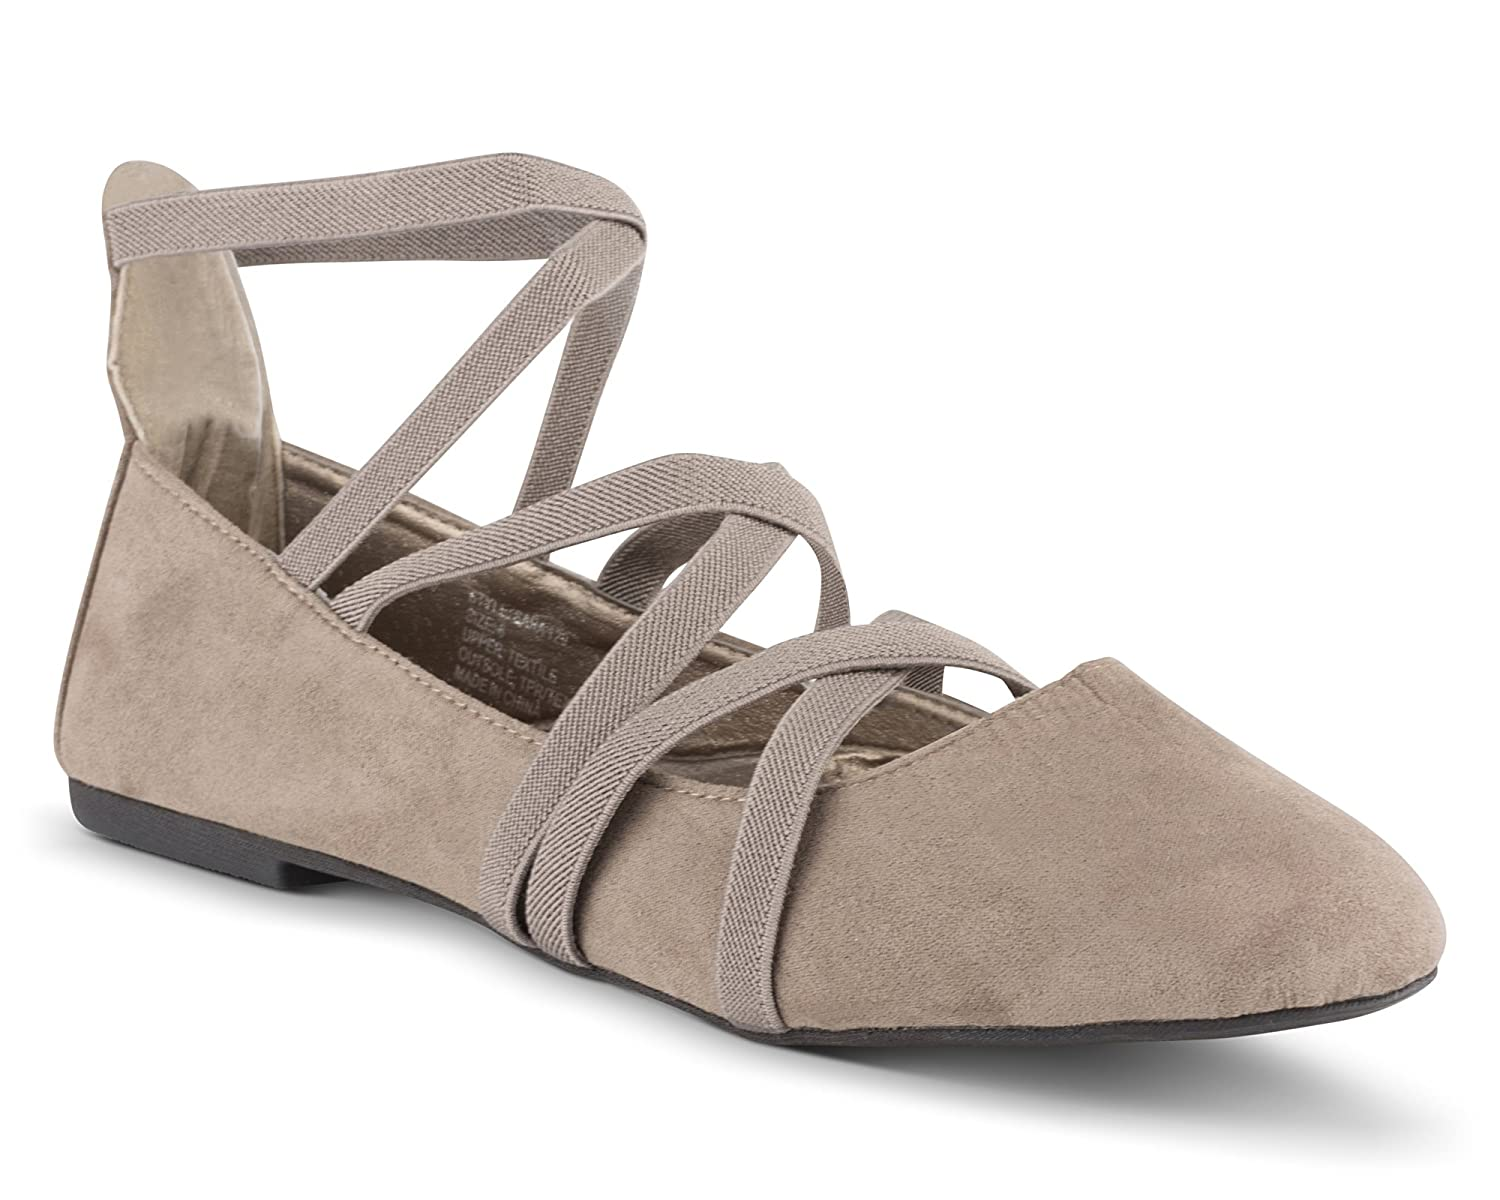 Twisted Womens Faux Suede Strappy Fashion Flats B01F7SHE2Q 8 B(M) US|Taupe